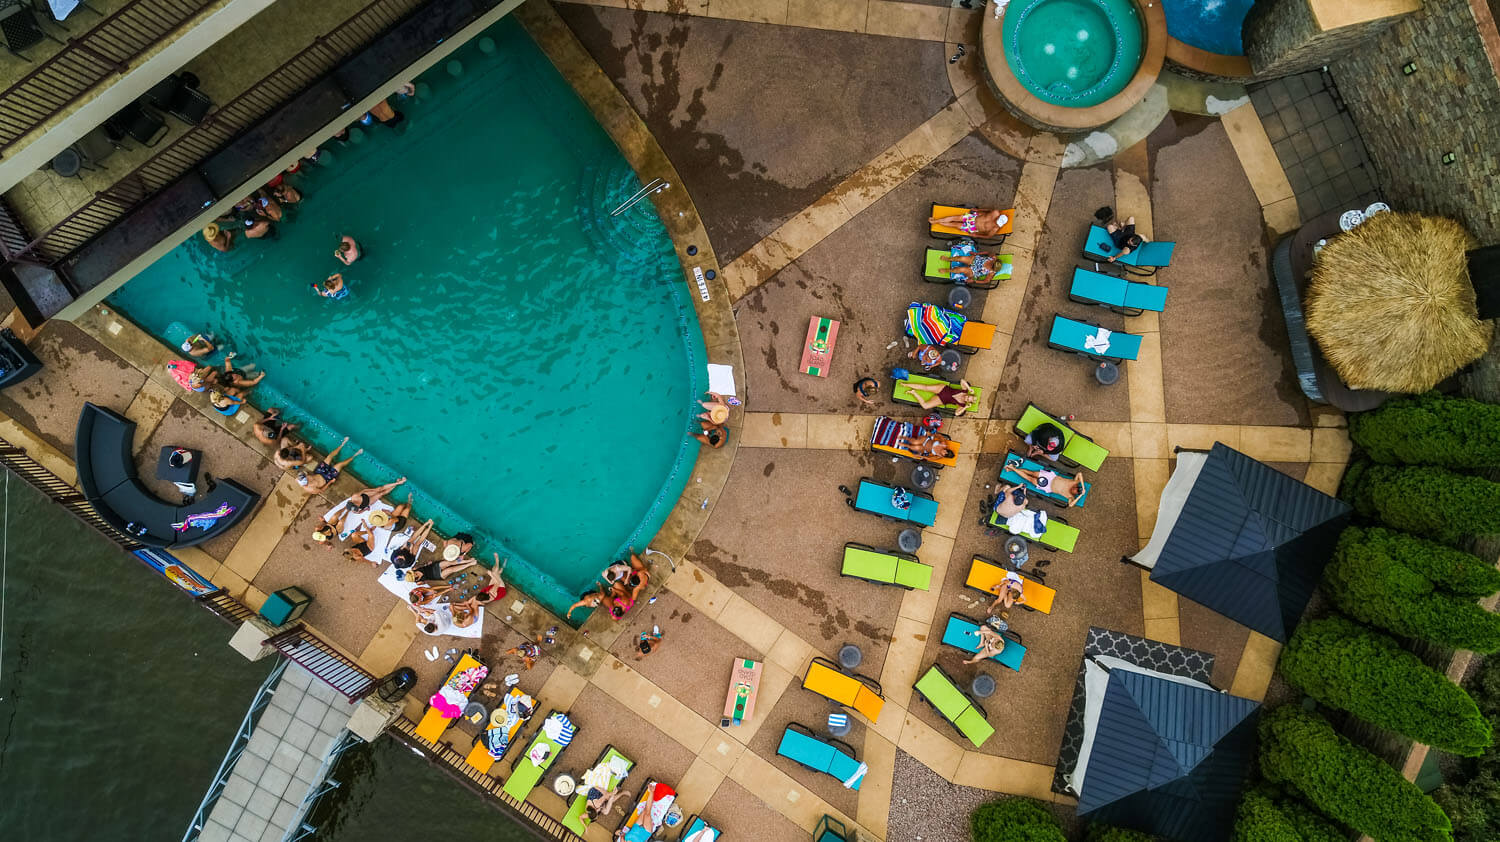 Aerial view of guests enjoying pool at camden on the lake resort